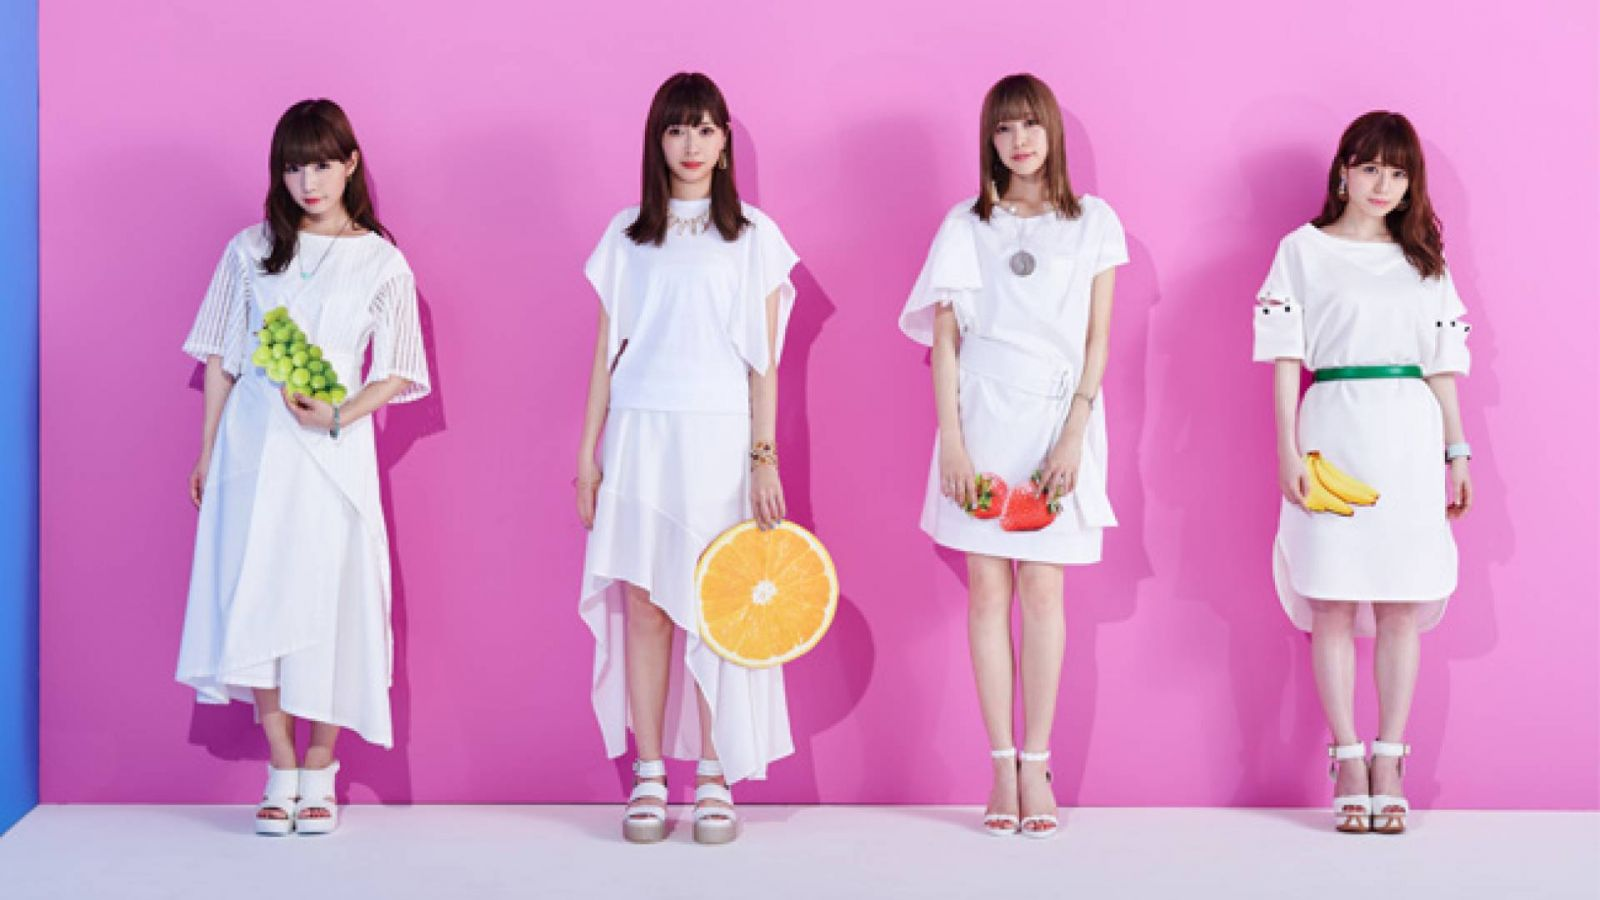 SILENT SIREN © UNIVERSAL MUSIC LLC. All rights reserved.